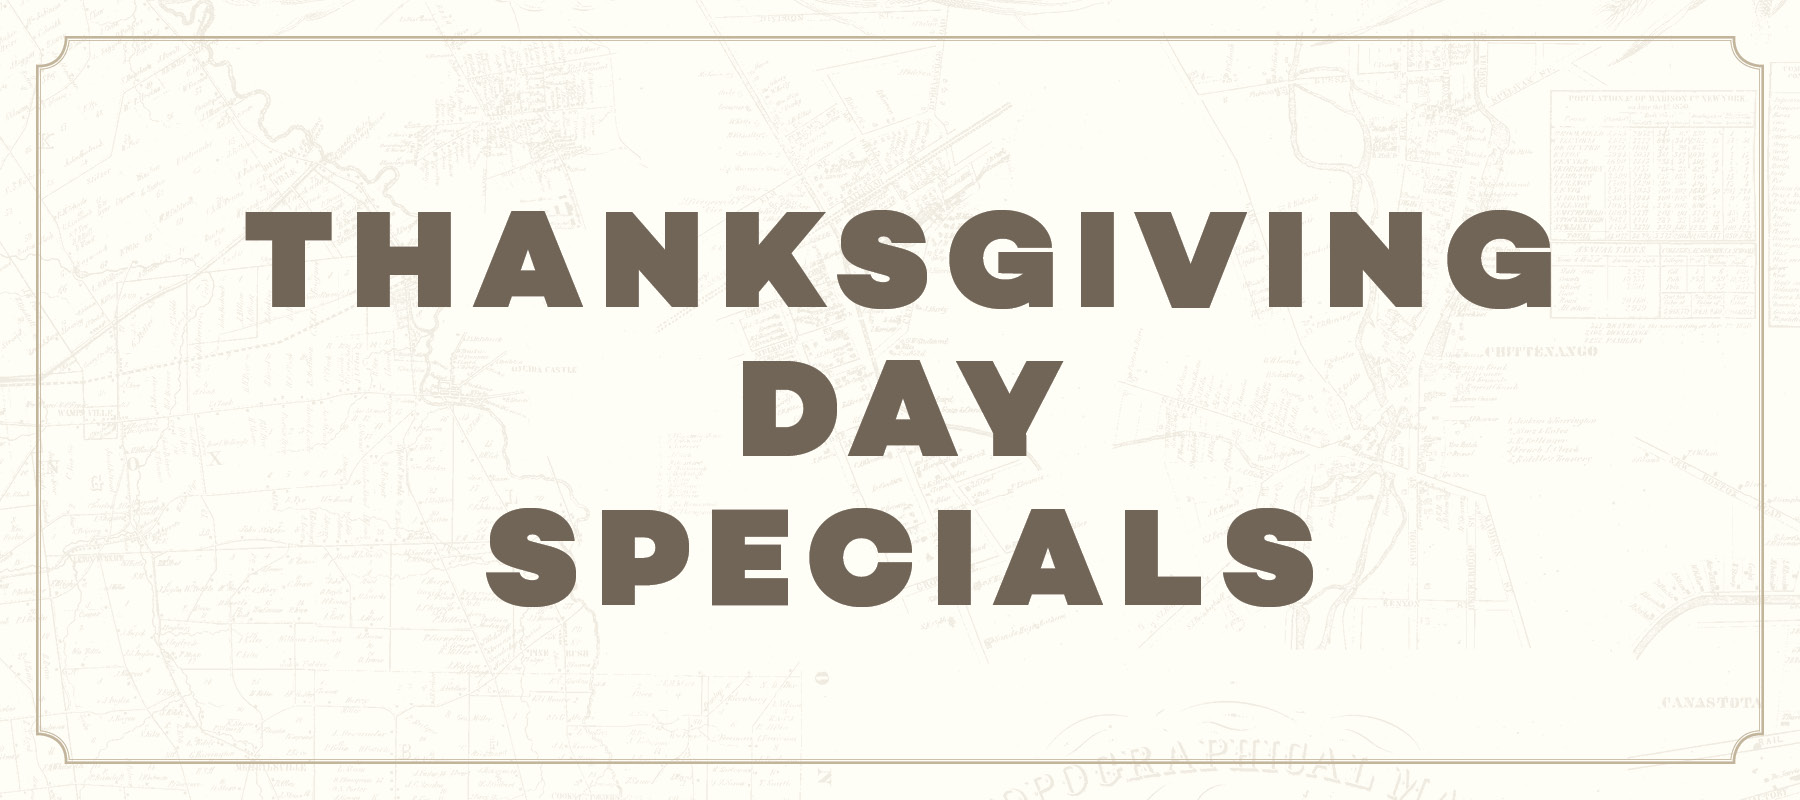 Thanksgiving Day Specials